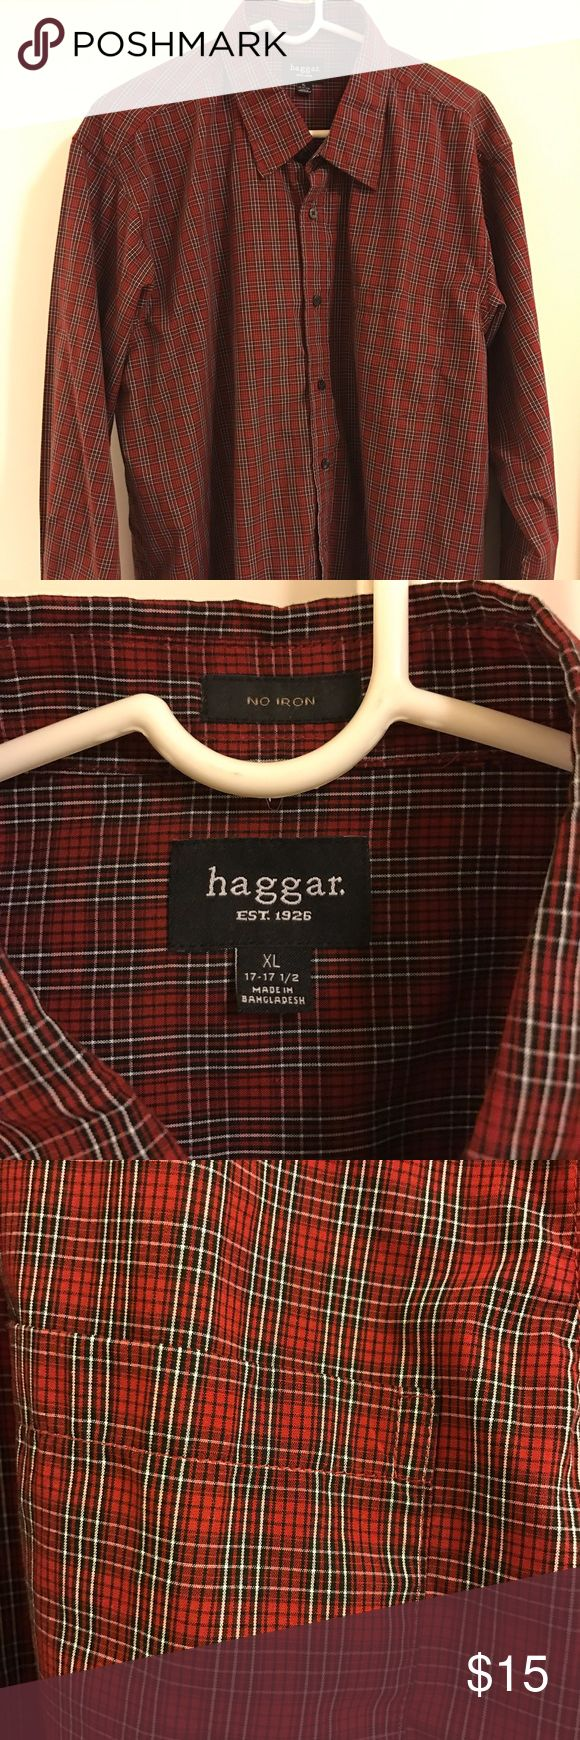 Men's Haggar Plaid Shirt XL Men's red plaid button down shirt XL. New without tags. Wrinkle free. Haggar Shirts Casual Button Down Shirts